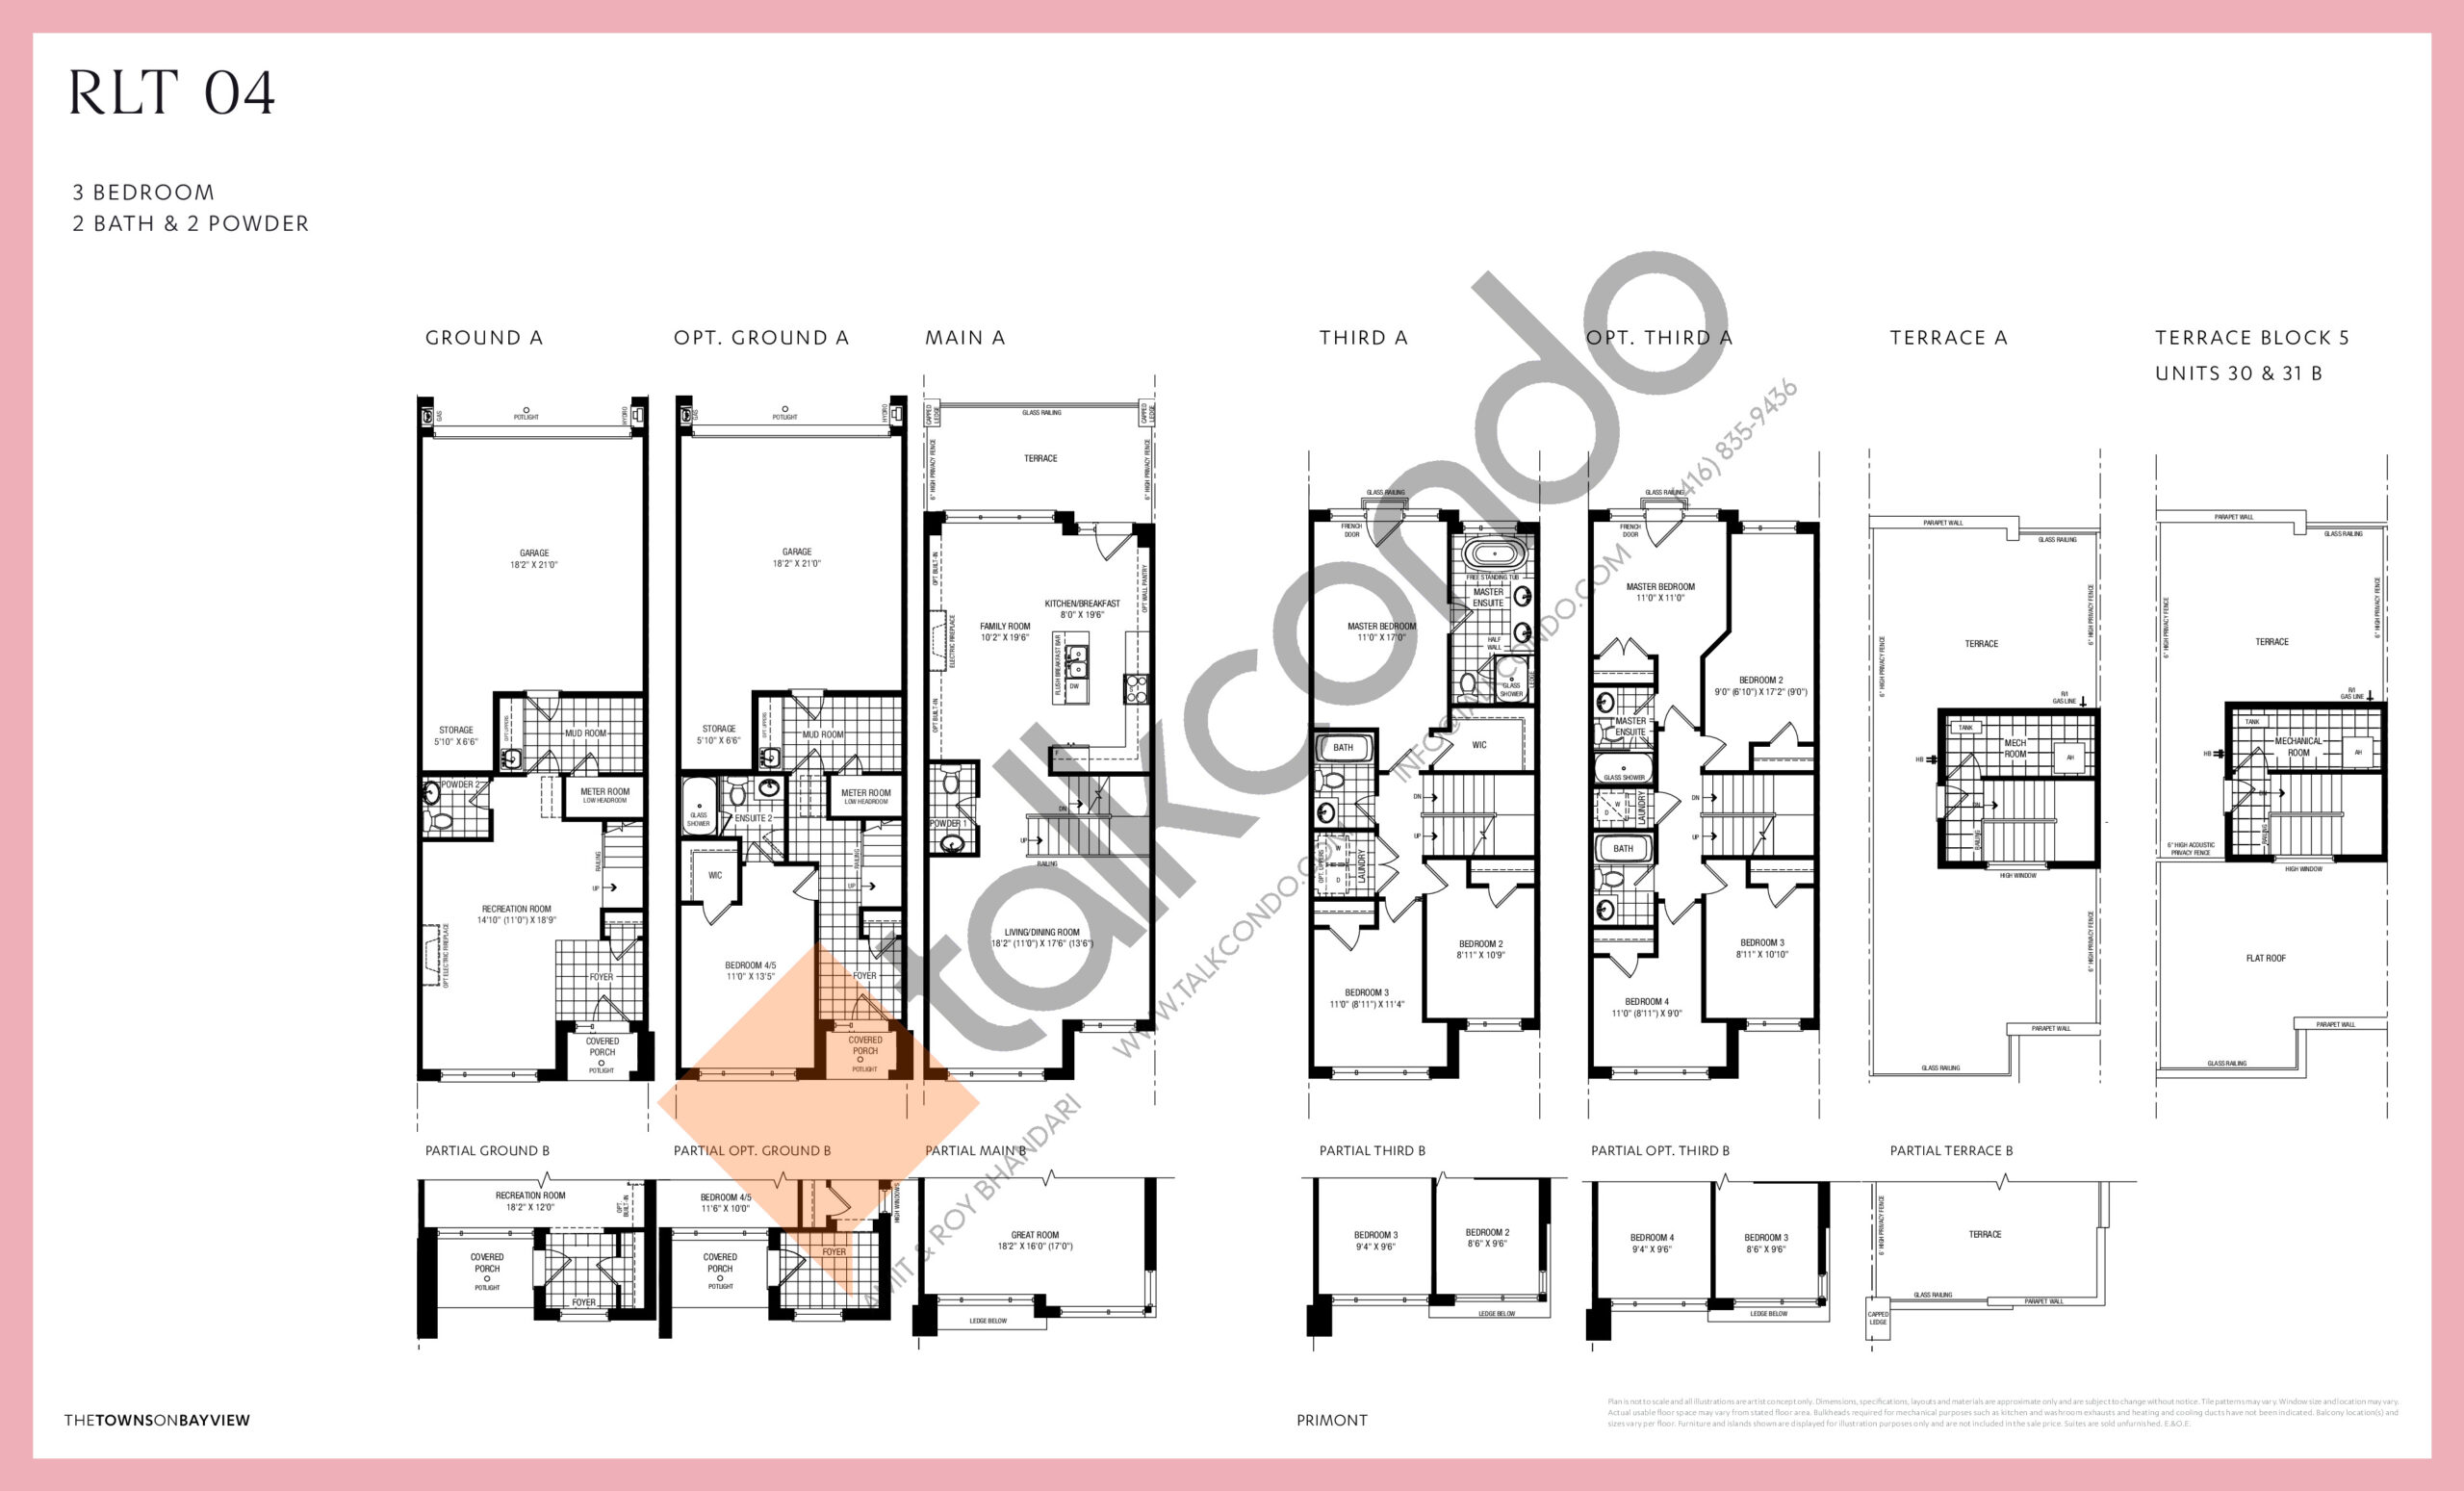 RLT 04 Floor Plan at The Towns on Bayview - 2392 sq.ft